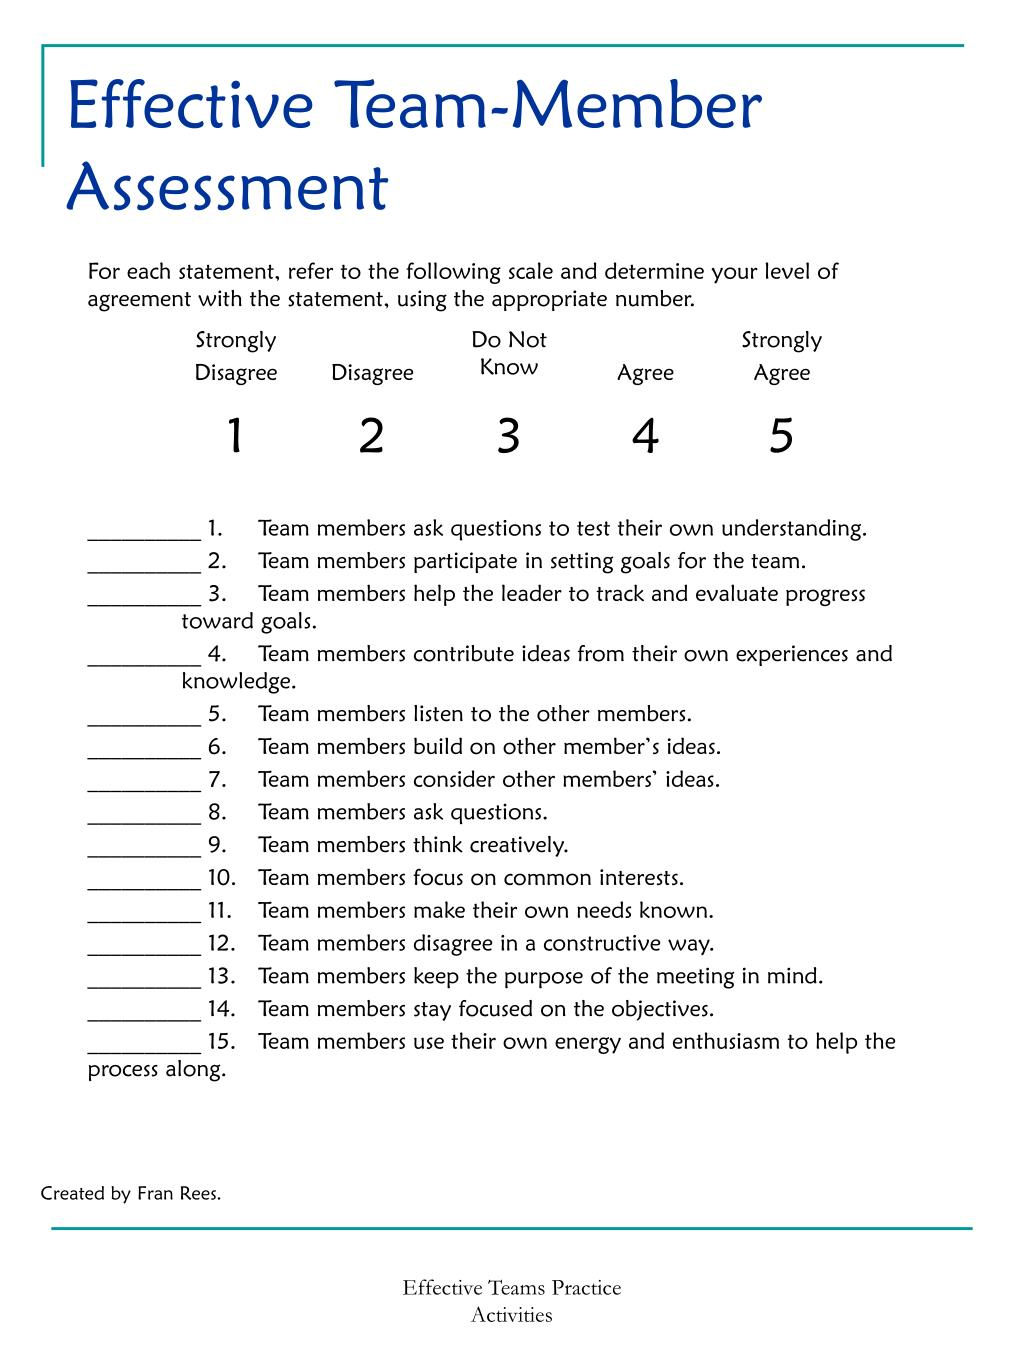 Effective Team-Member Assessment